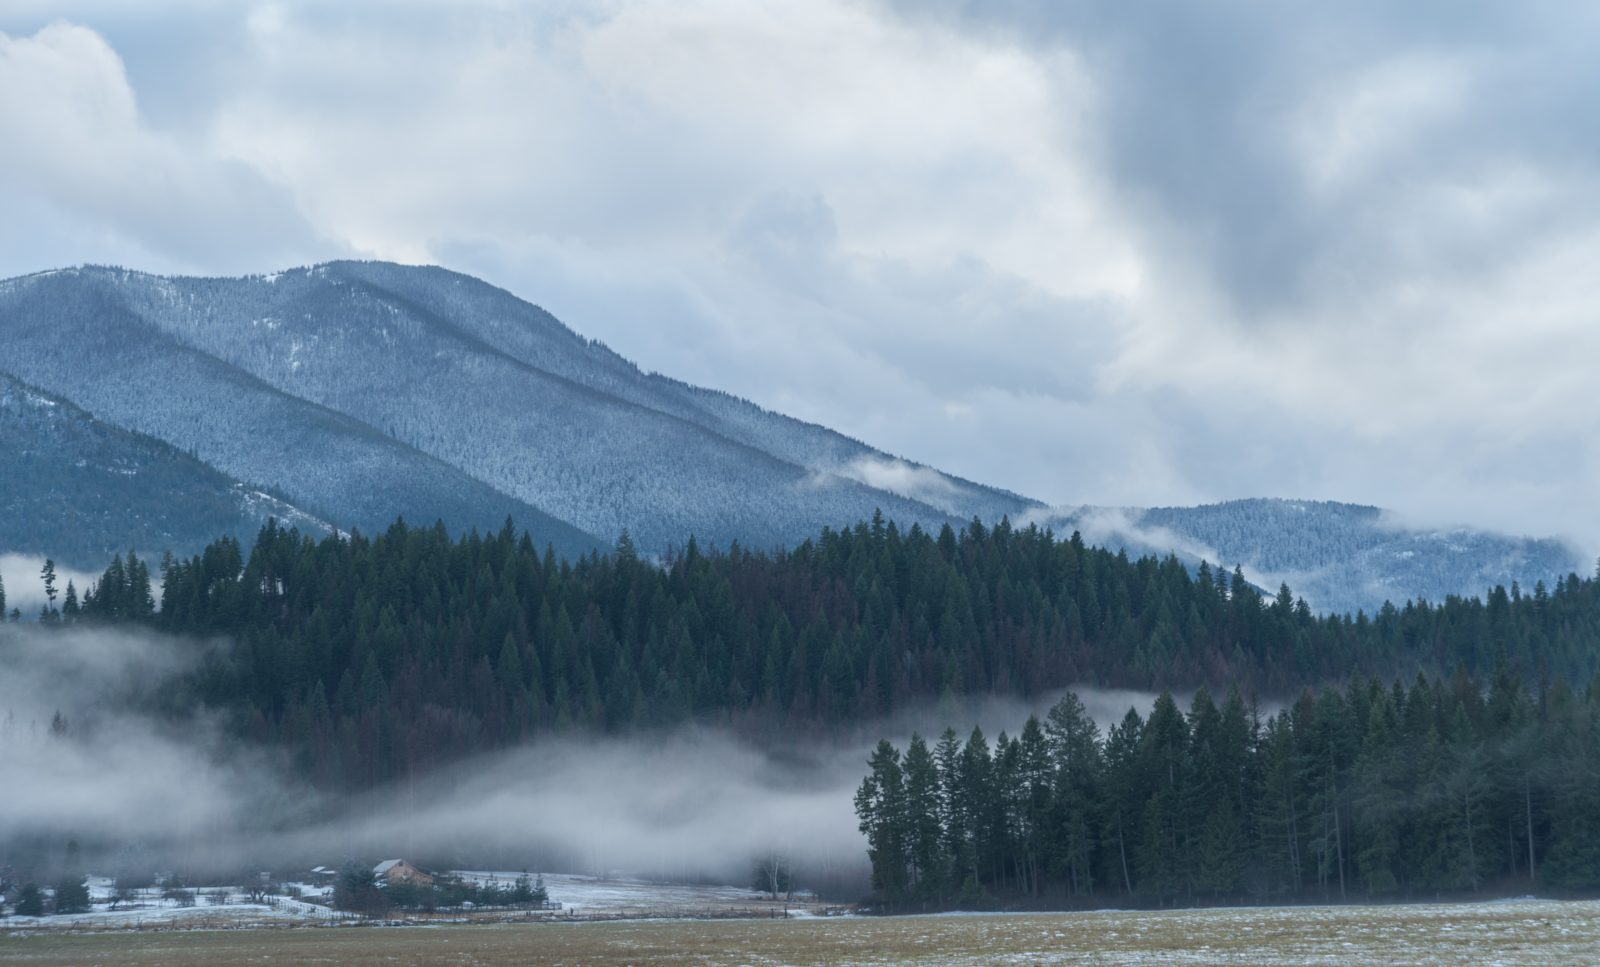 Fog in the Kootenai Vally